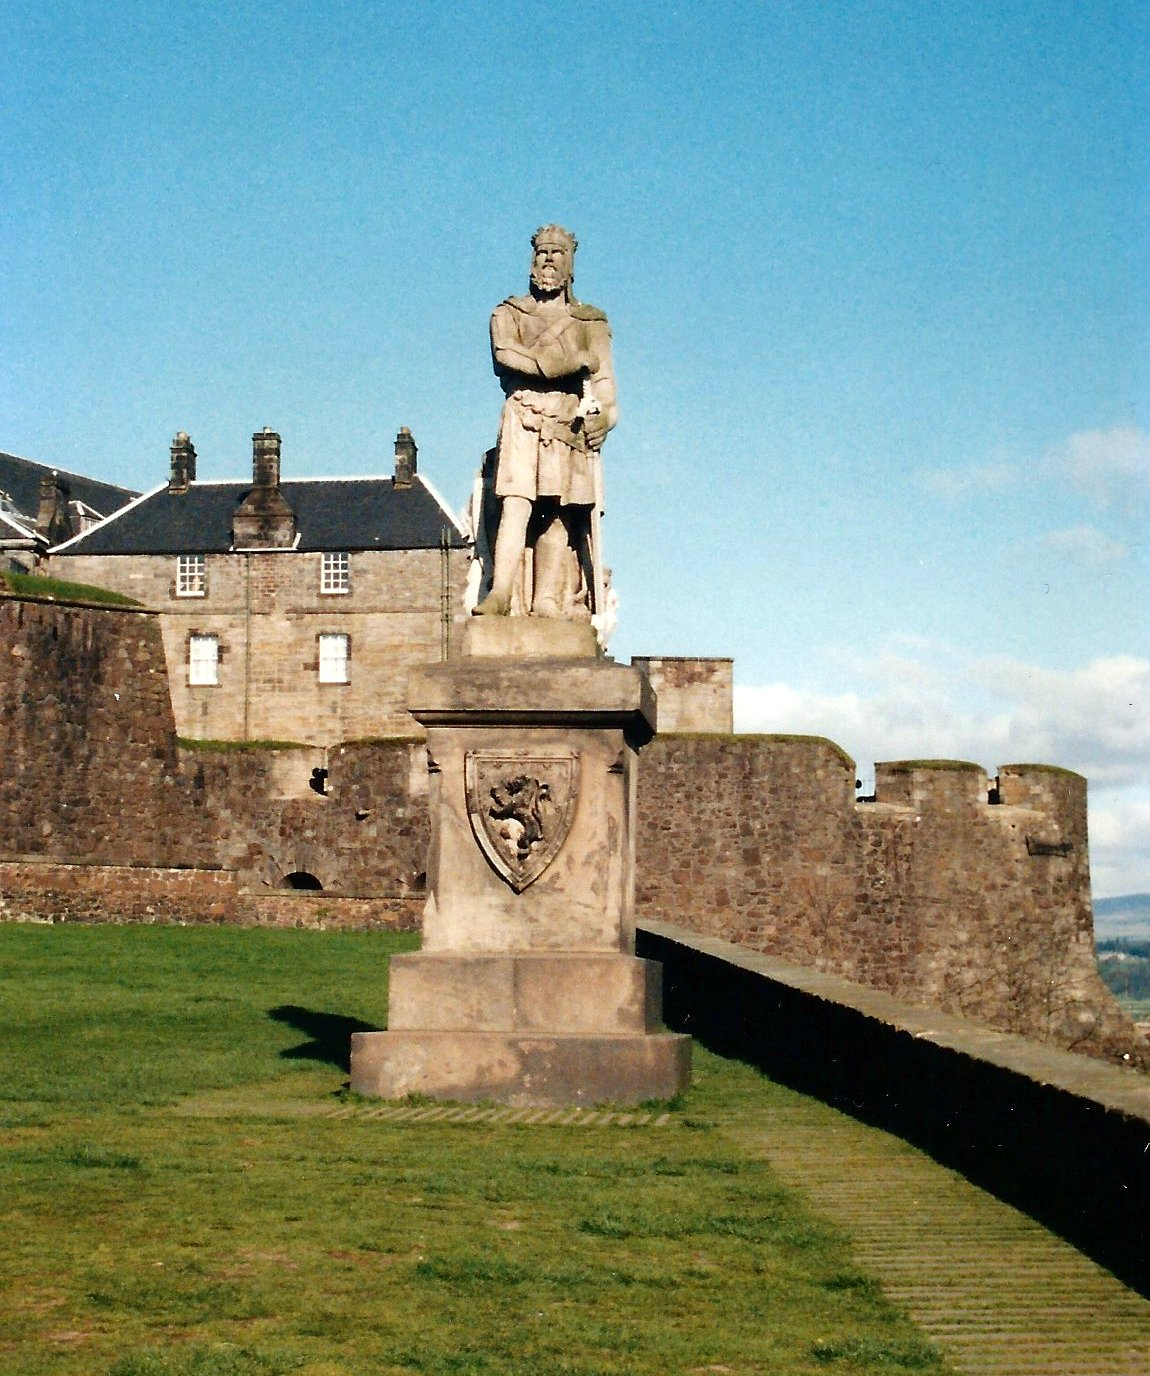 Statue of Robert the Bruce, Stirling Castle, Scotland March 1990